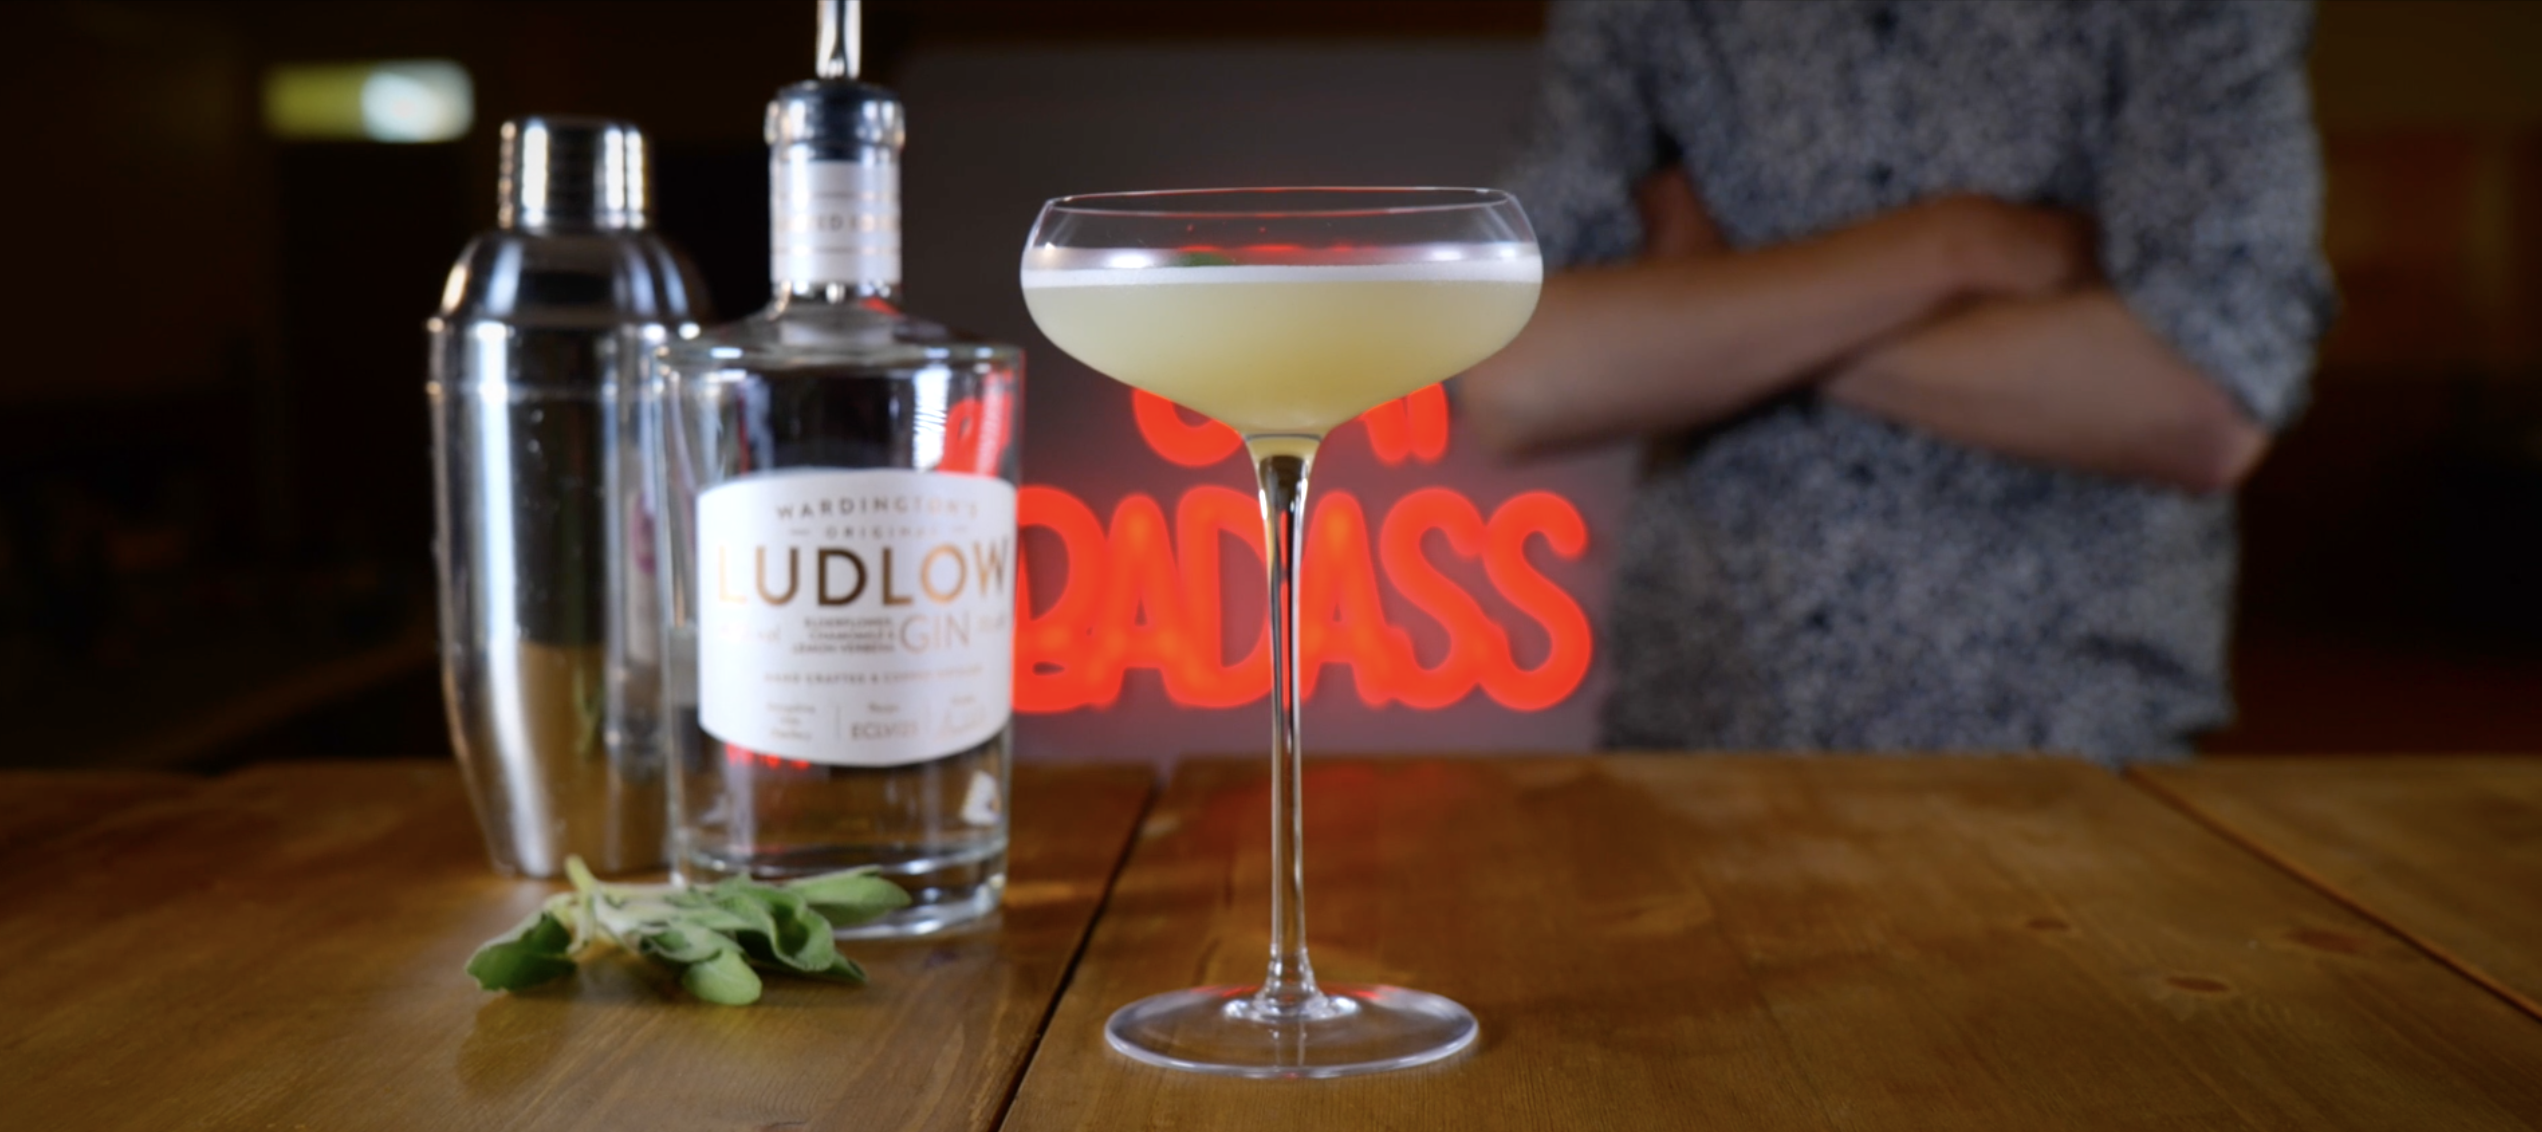 Working with Ludlow Gin